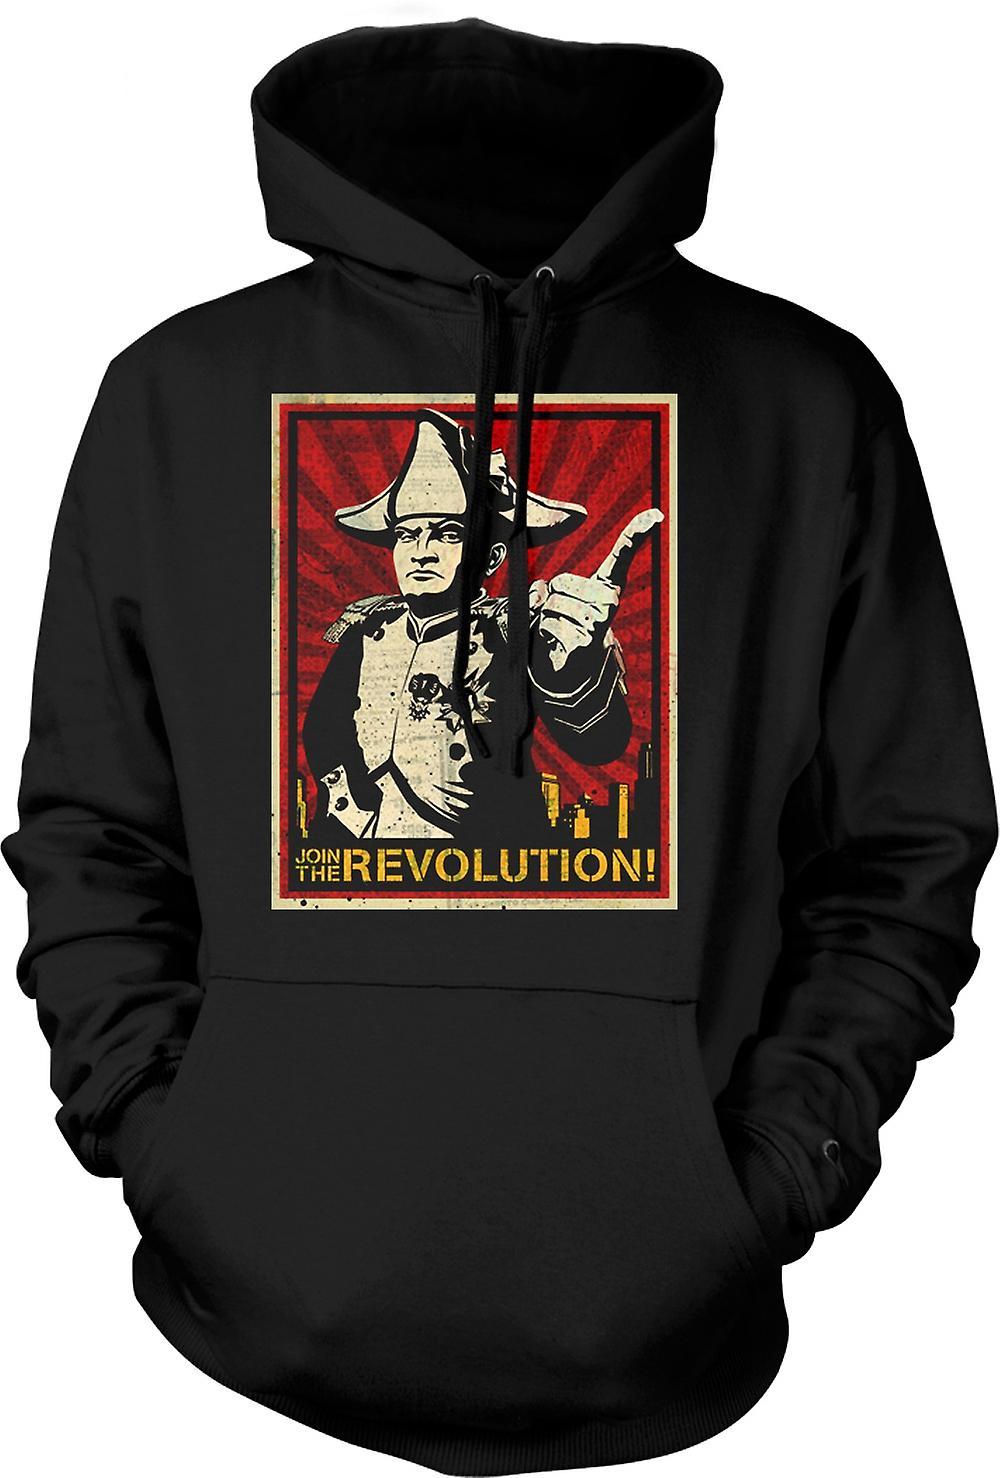 Mens Hoodie - Napoleon - Join The Revolution